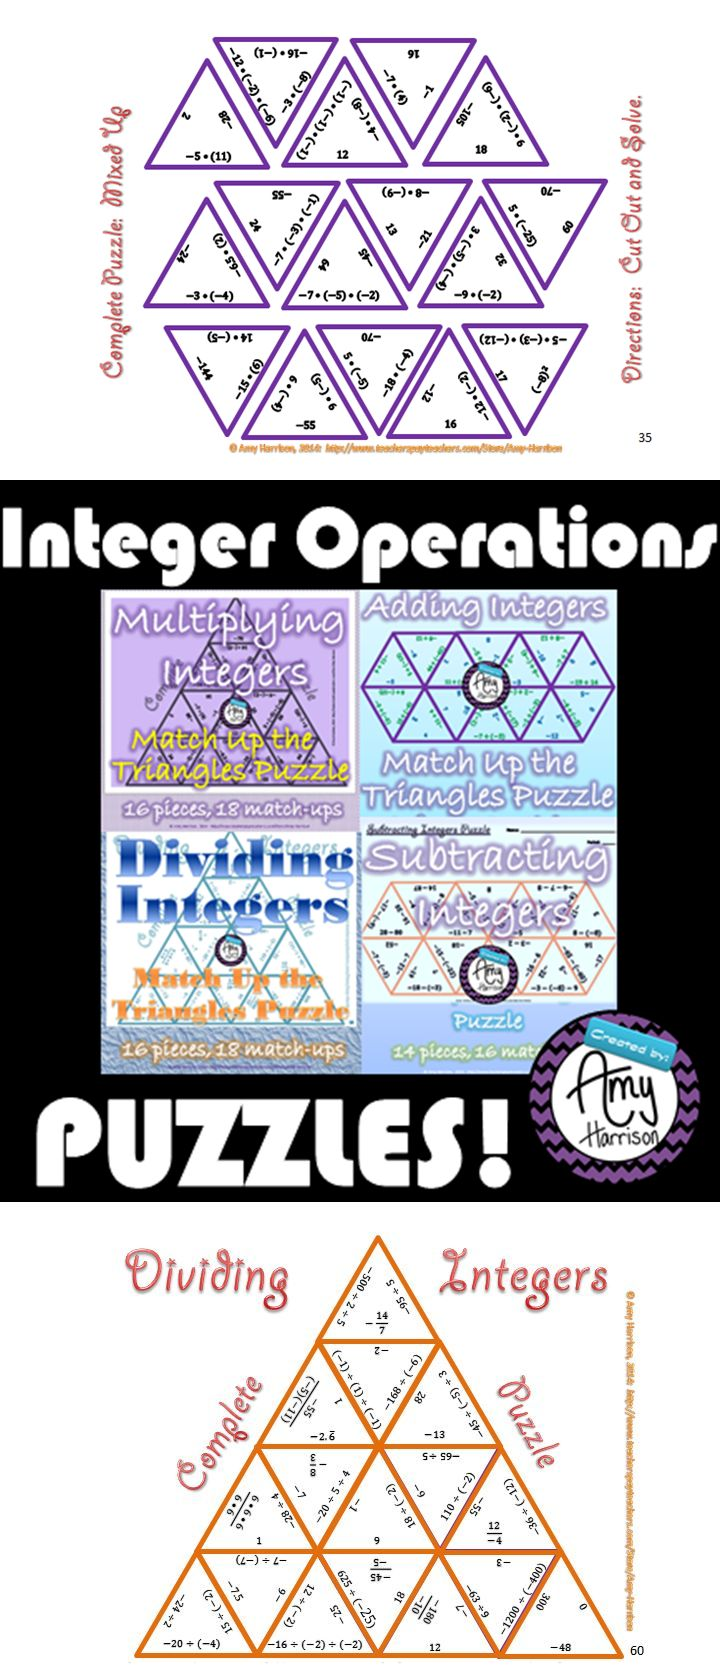 4 Puzzles:  Integer Operations:  Adding, Subtracting, Multiplying, & Dividing.